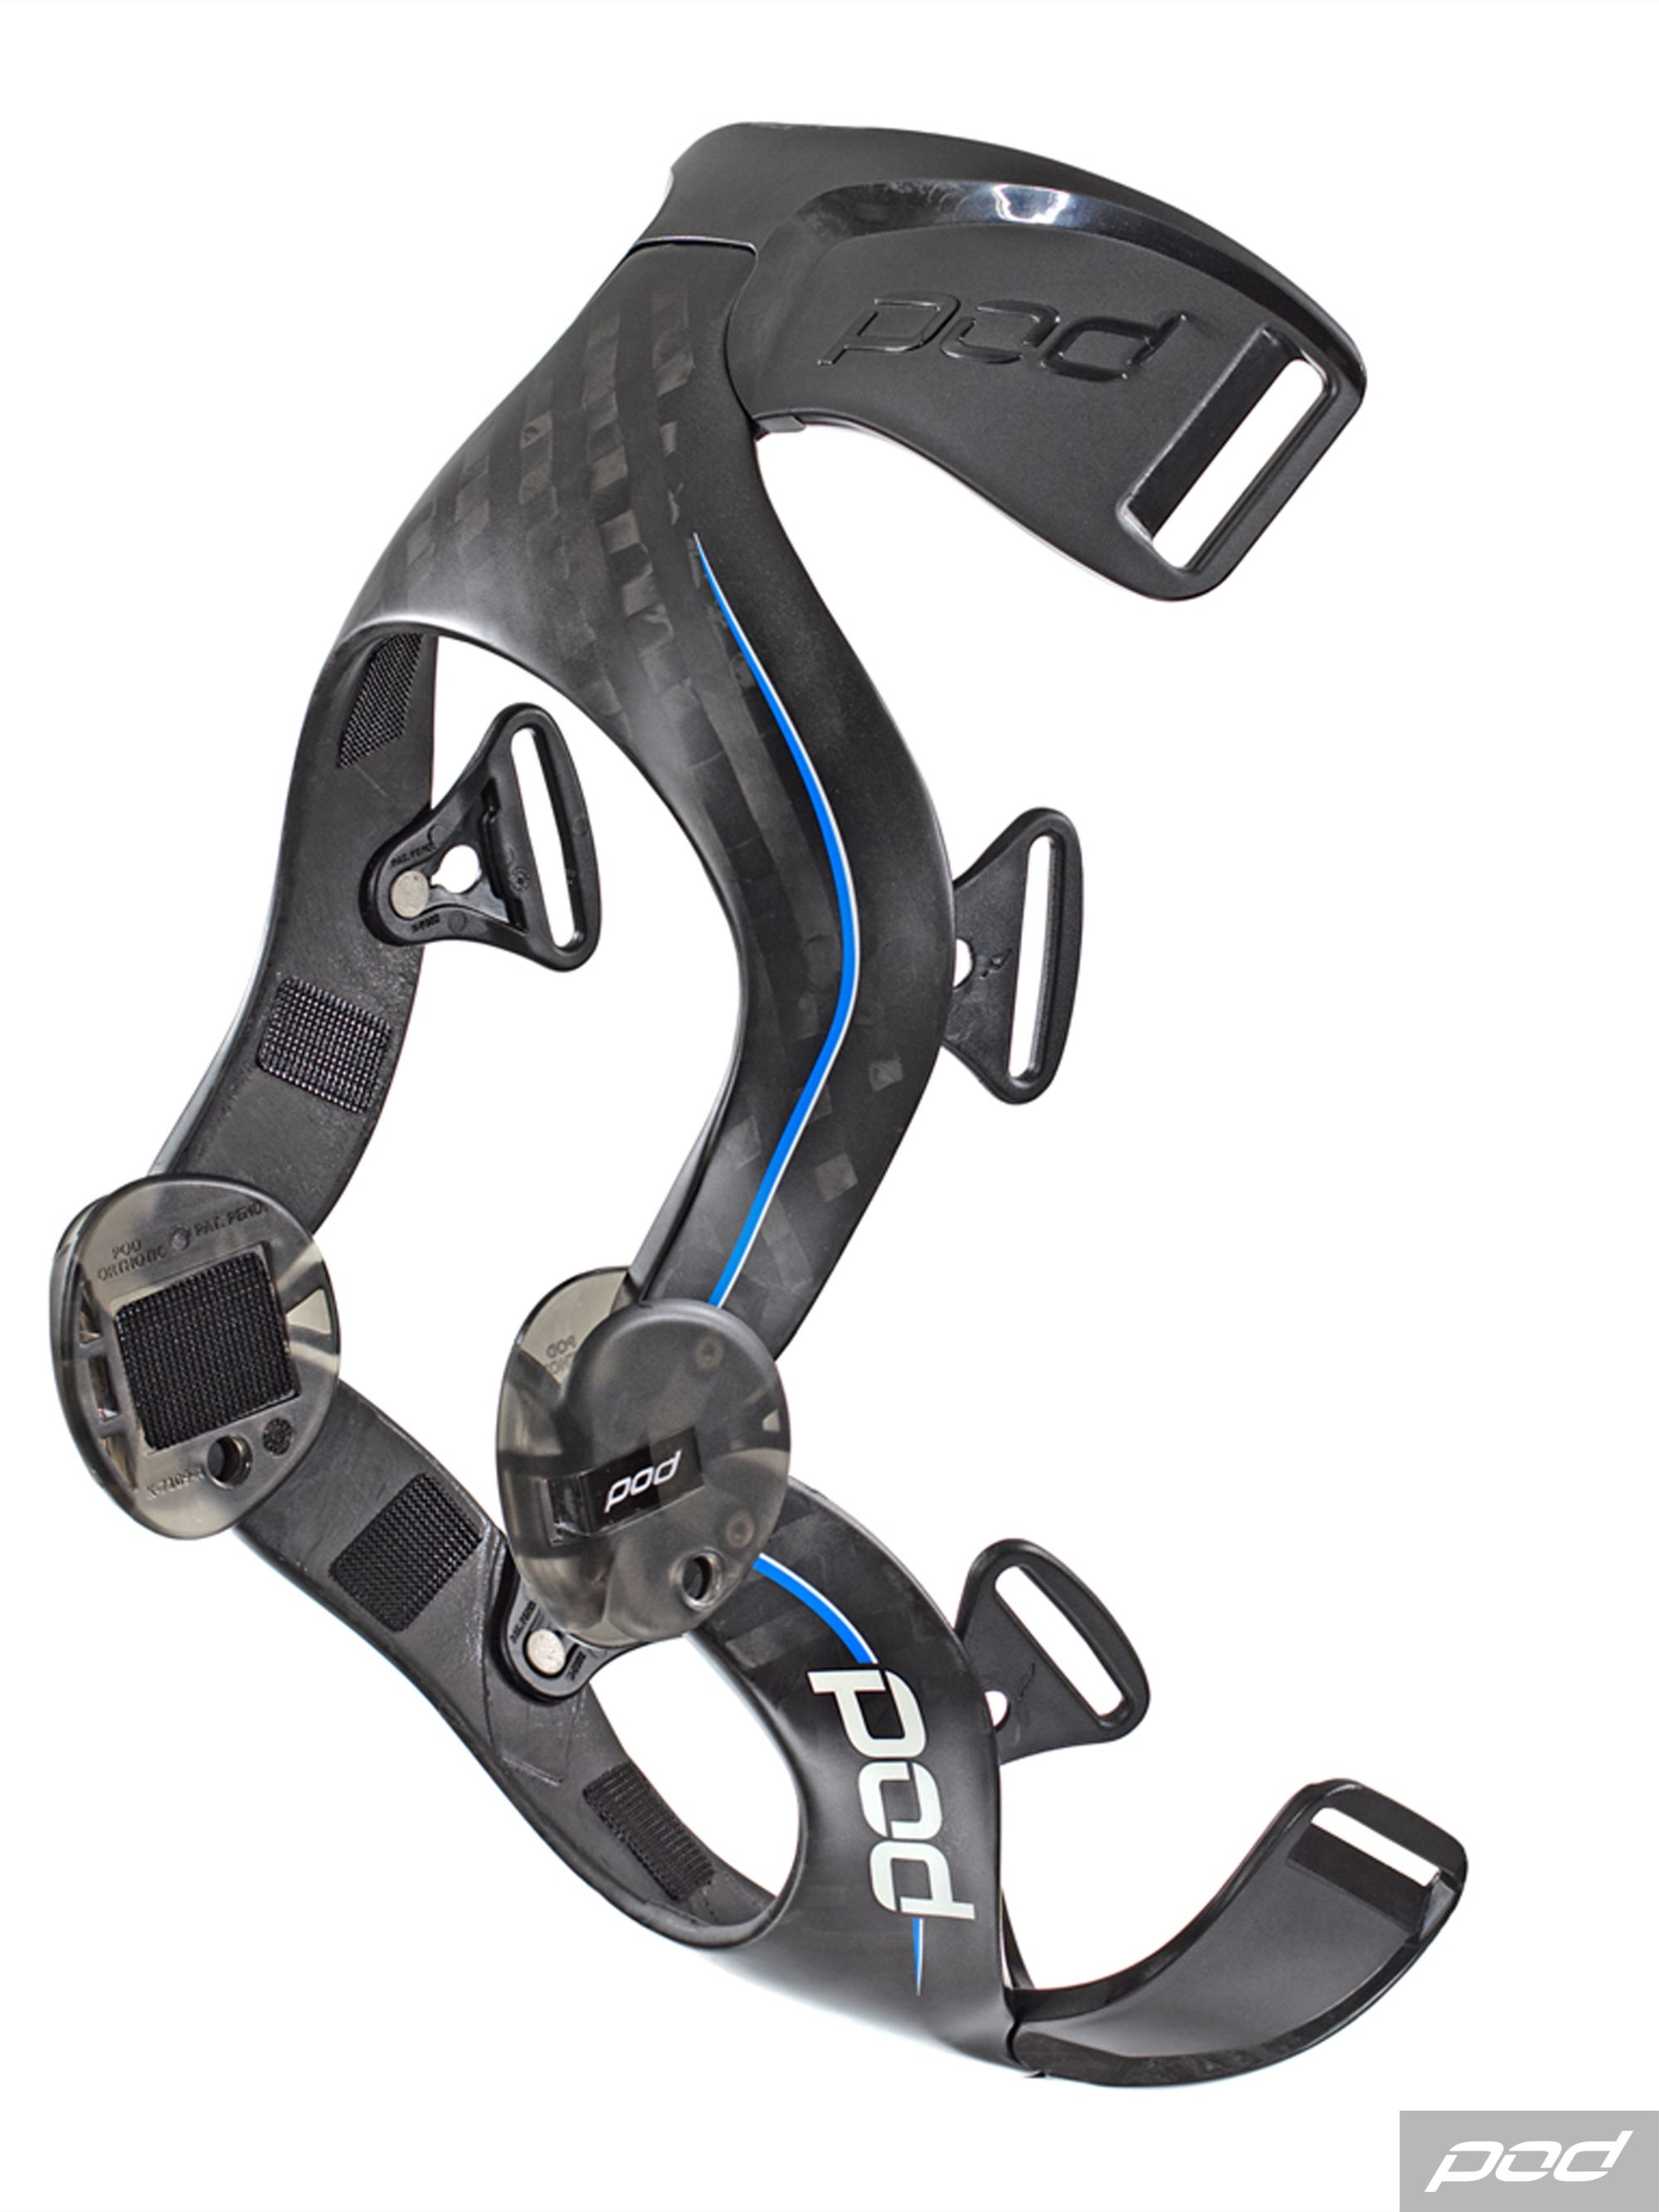 Mx Knee Braces >> POD K8 Knee Braces - Carbon - Black - GH Motorcycles